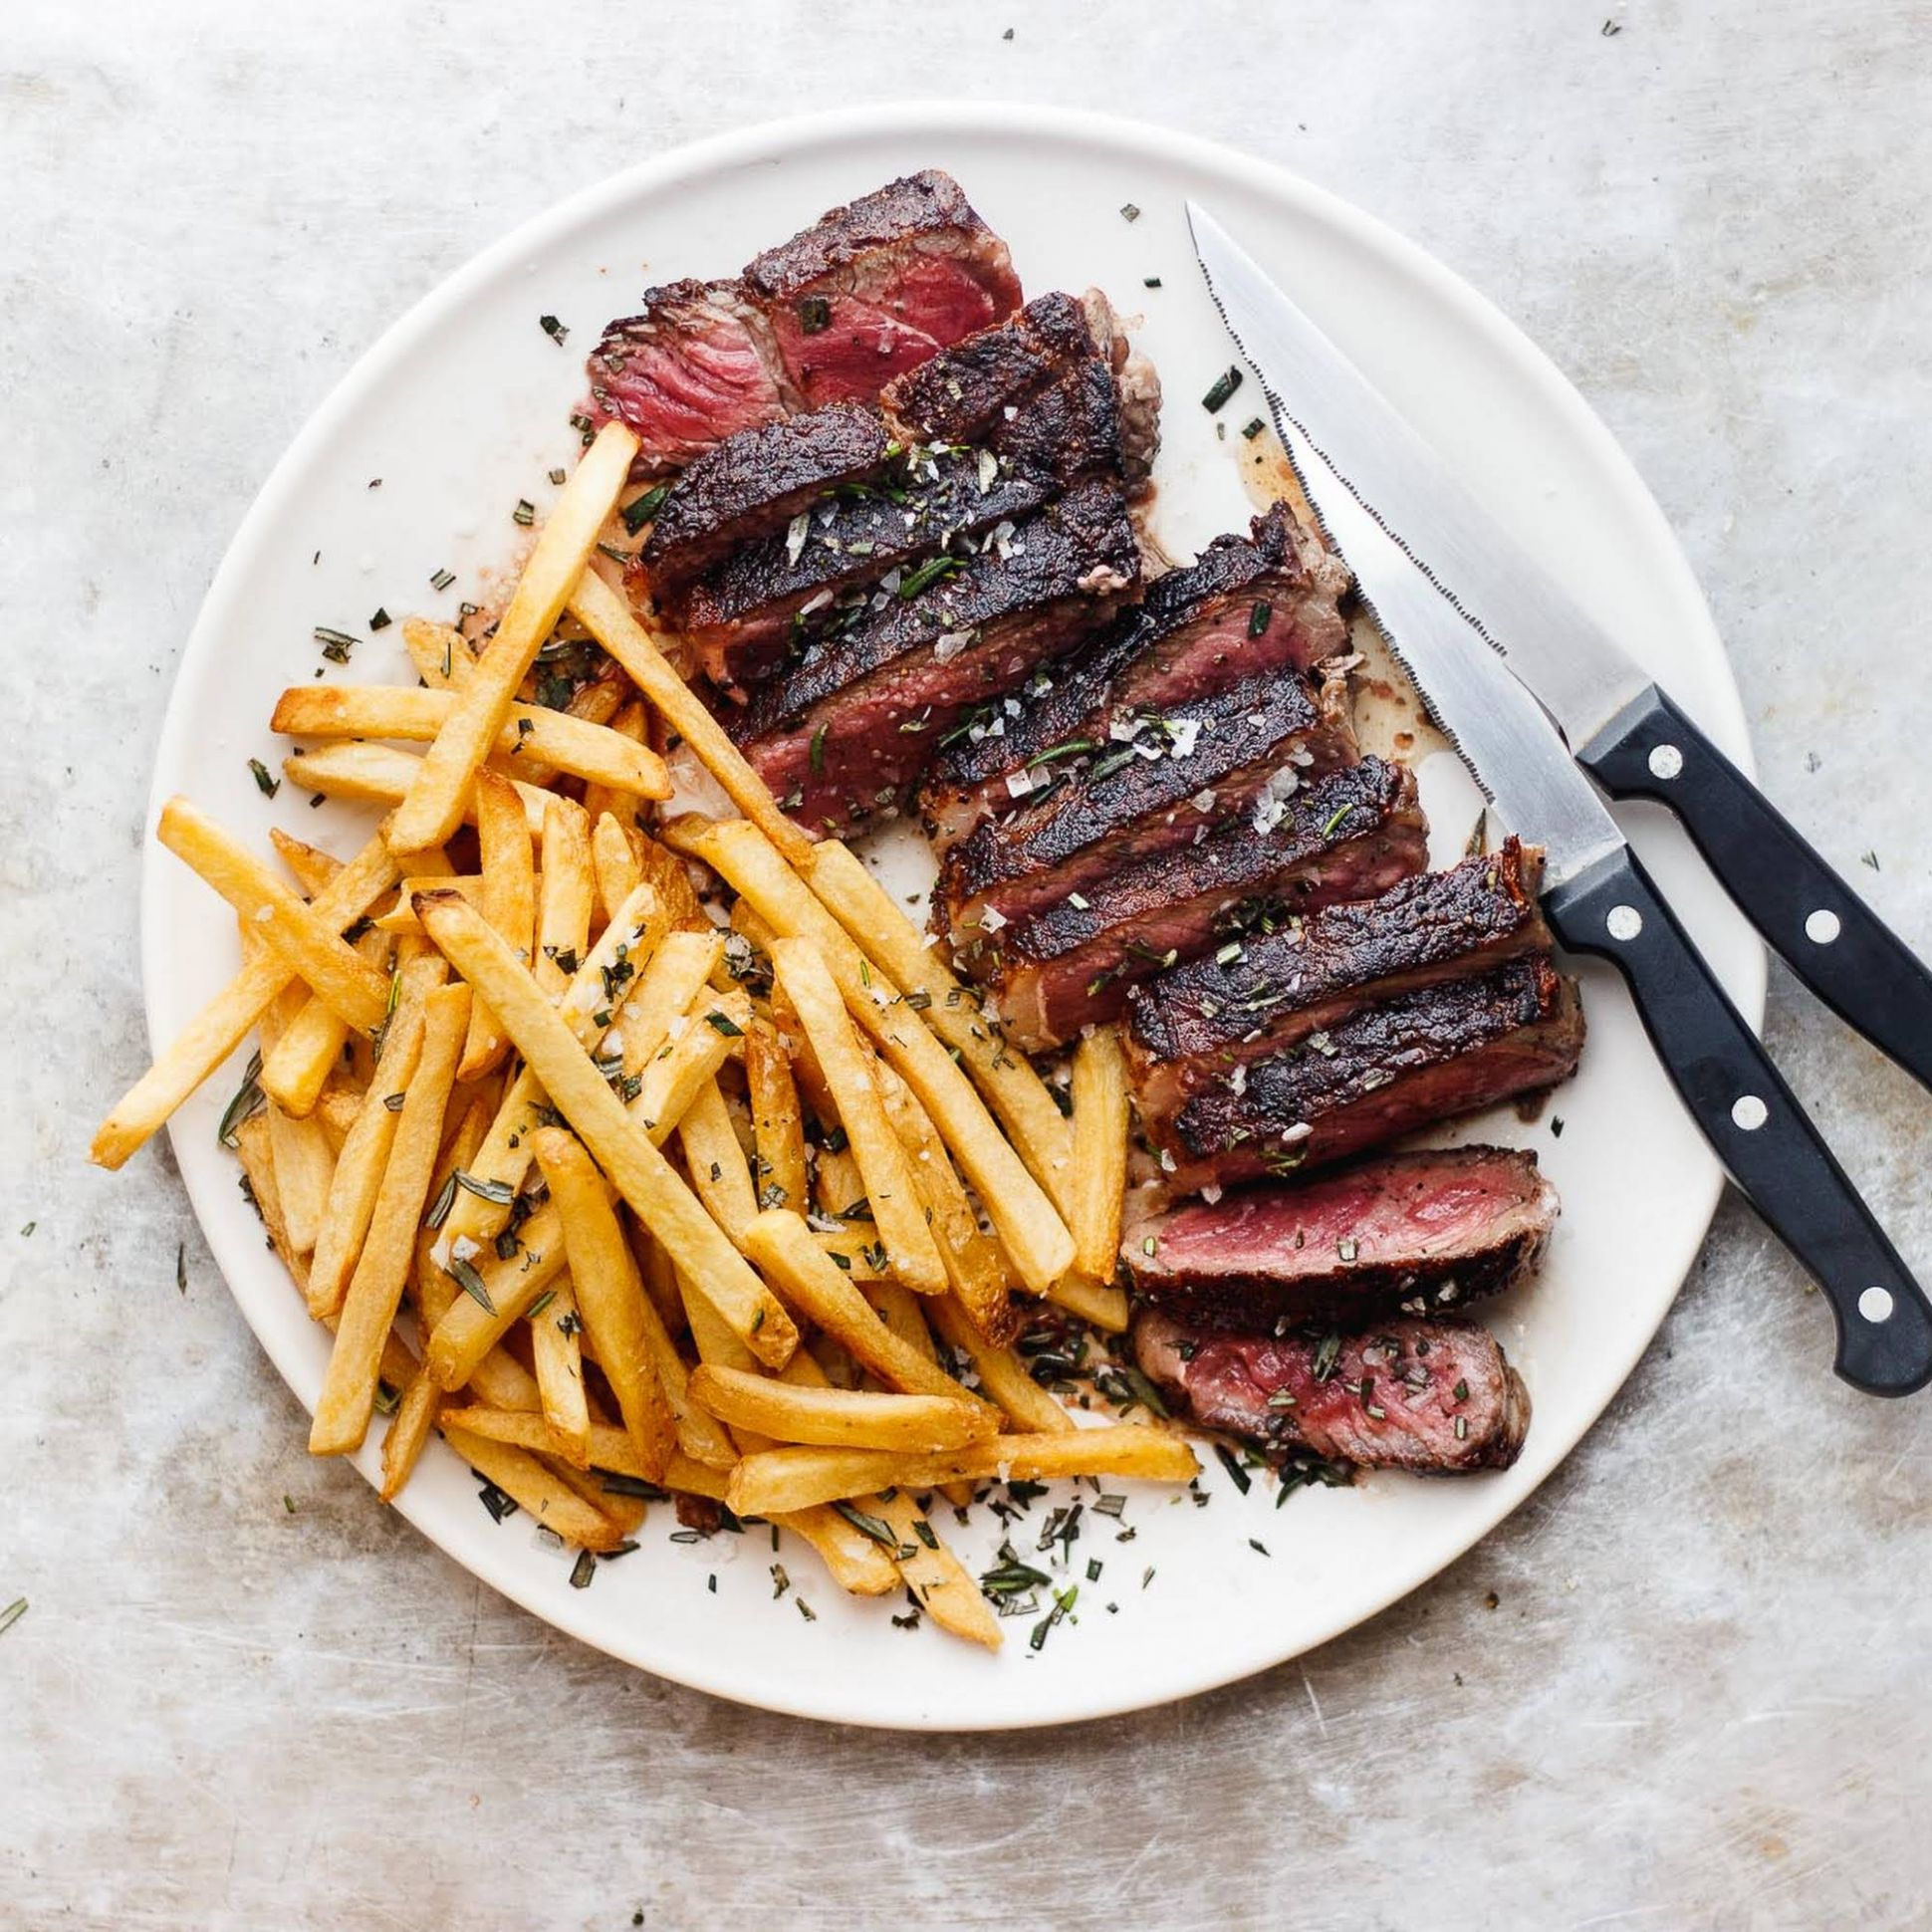 New York Strip Steak Frites with Rosemary Flake Salt